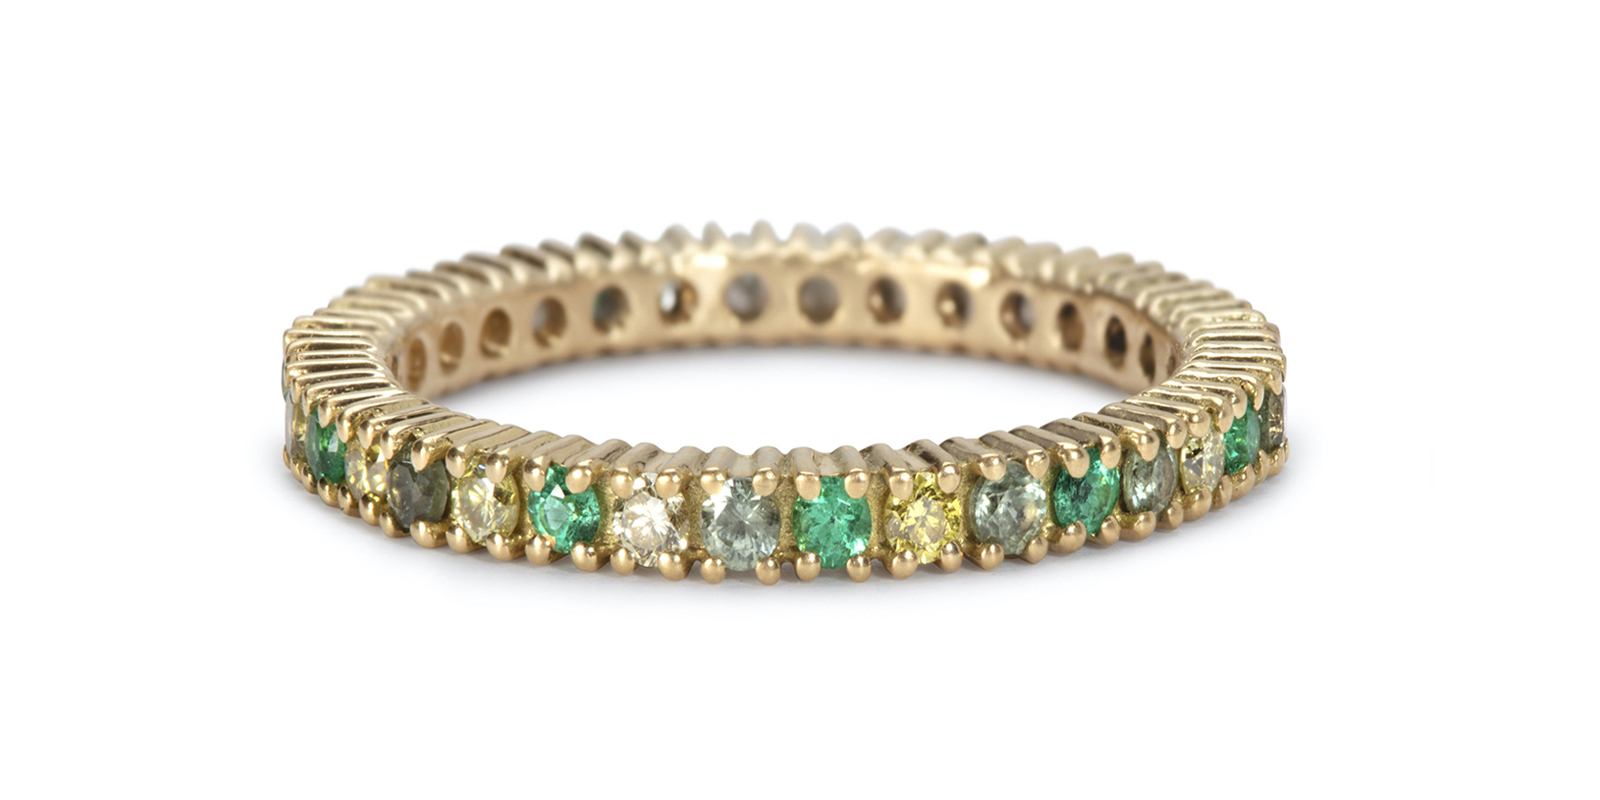 Rachelle's Emerald Eternity Ring